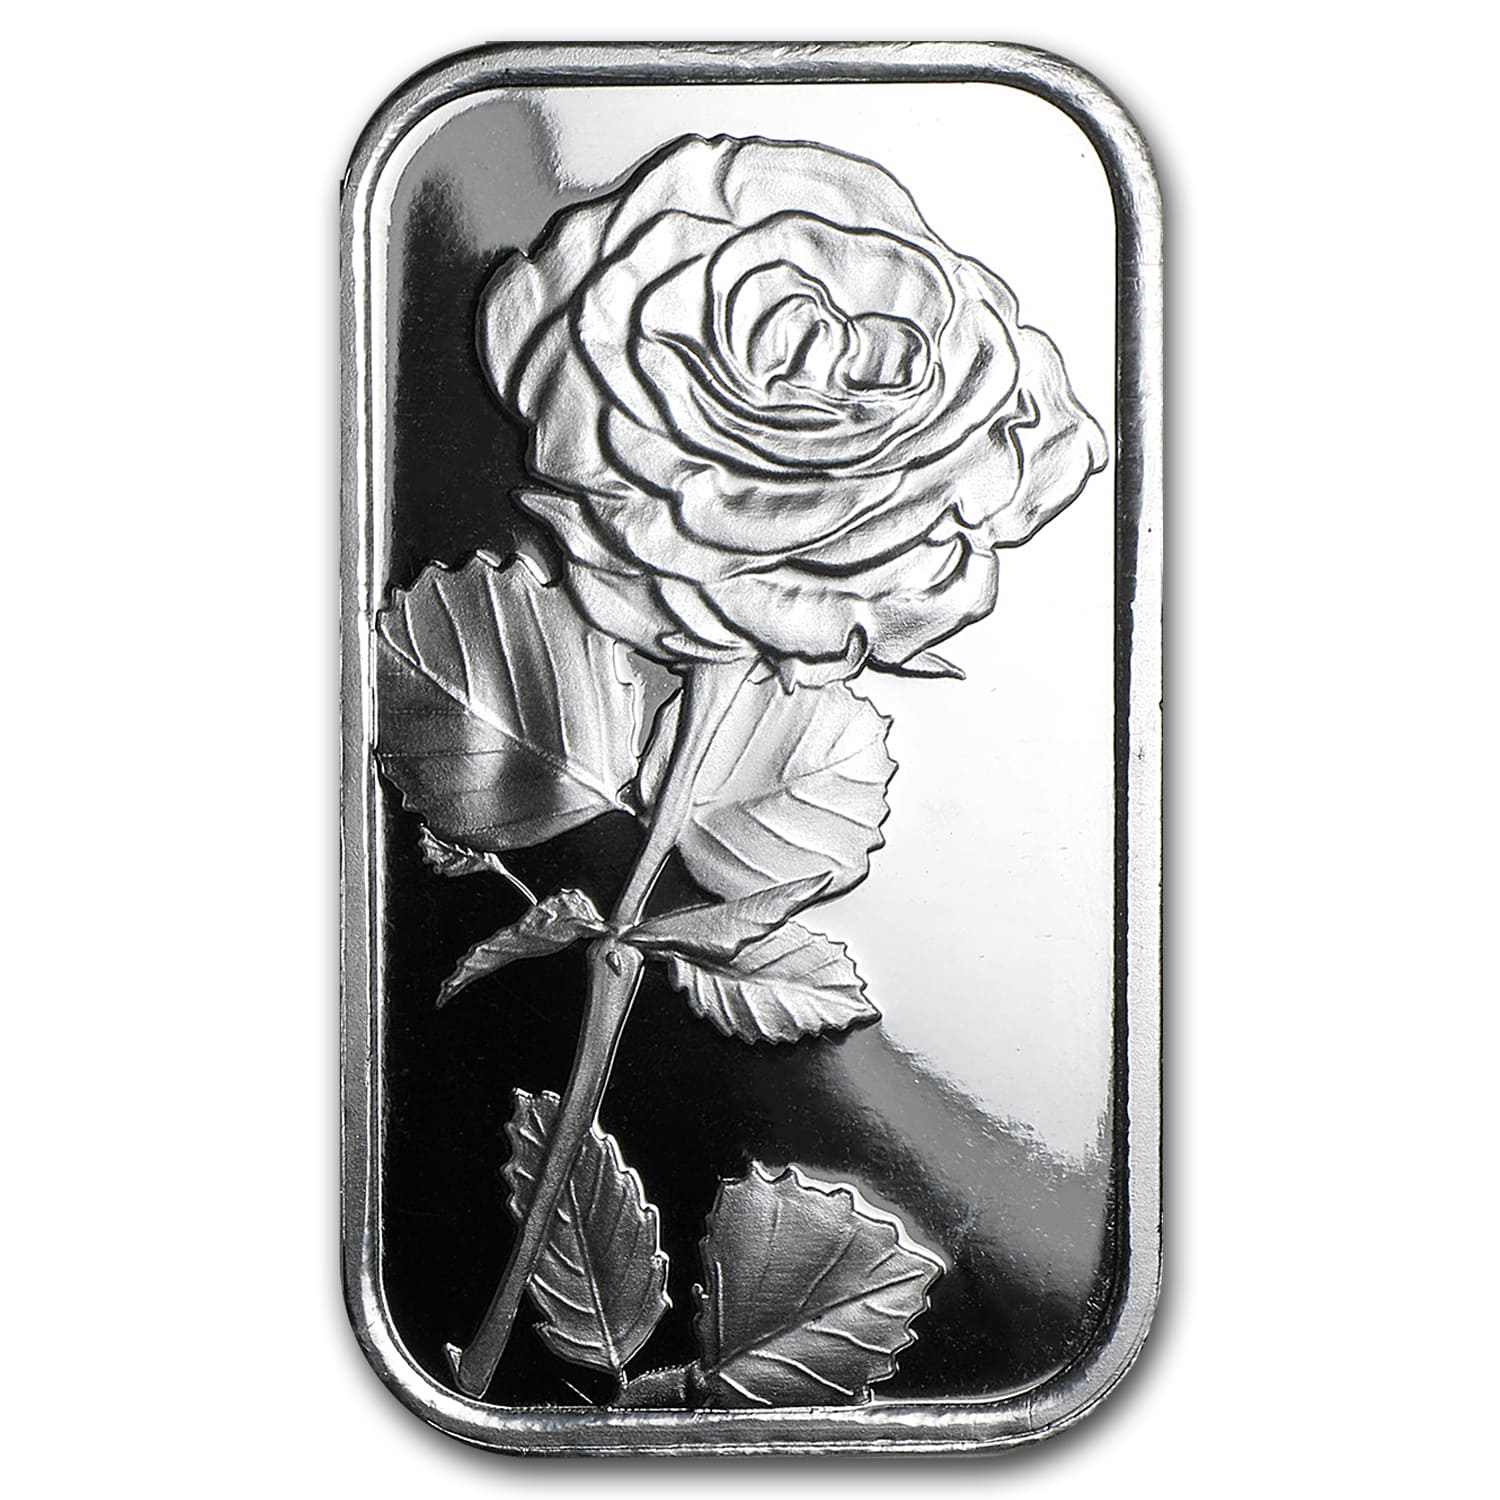 1 oz Silver Bar - Rose